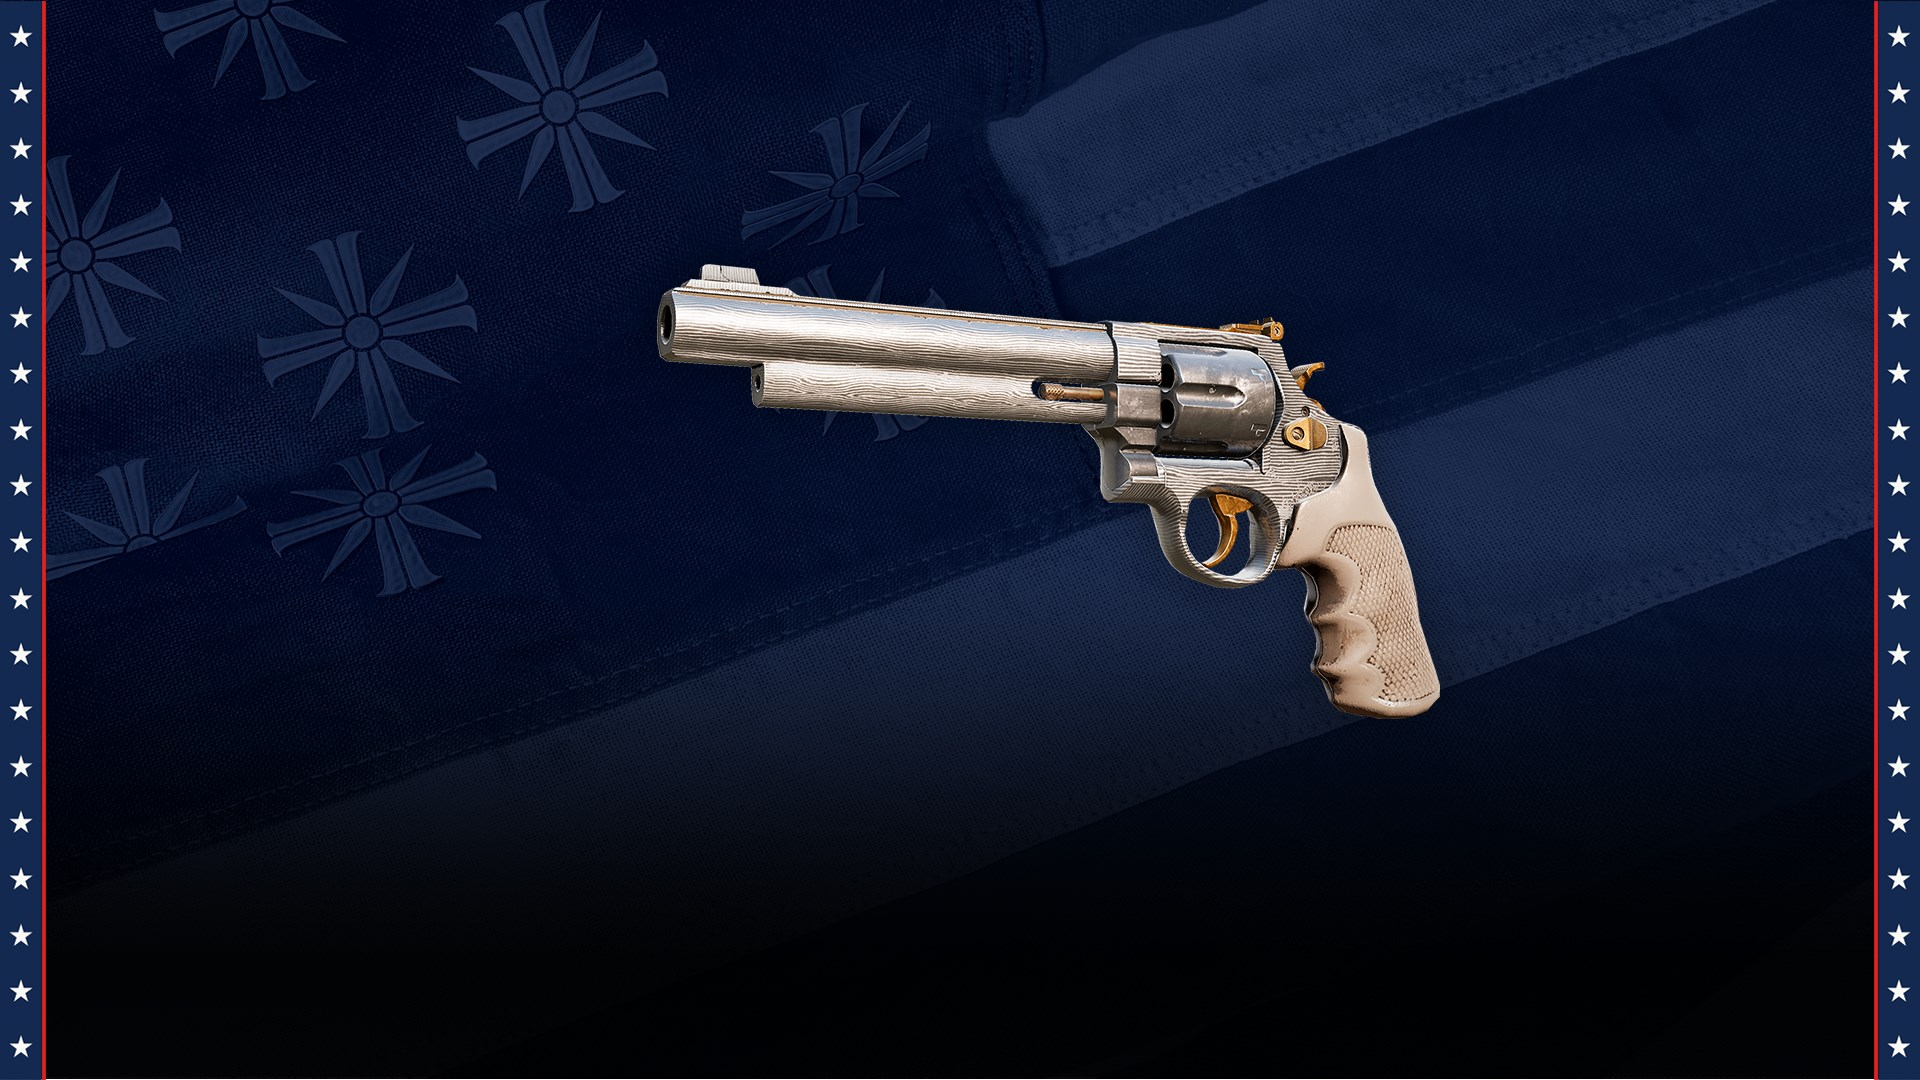 Far Cry 5 - Signature .44 Magnum Handgun